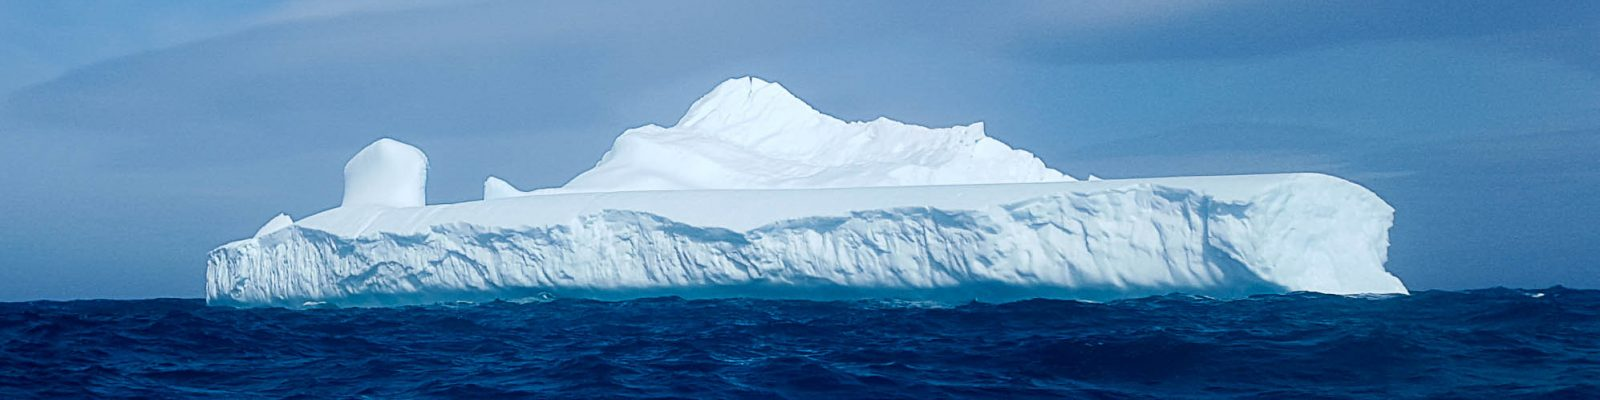 Iceberg on Antarctica